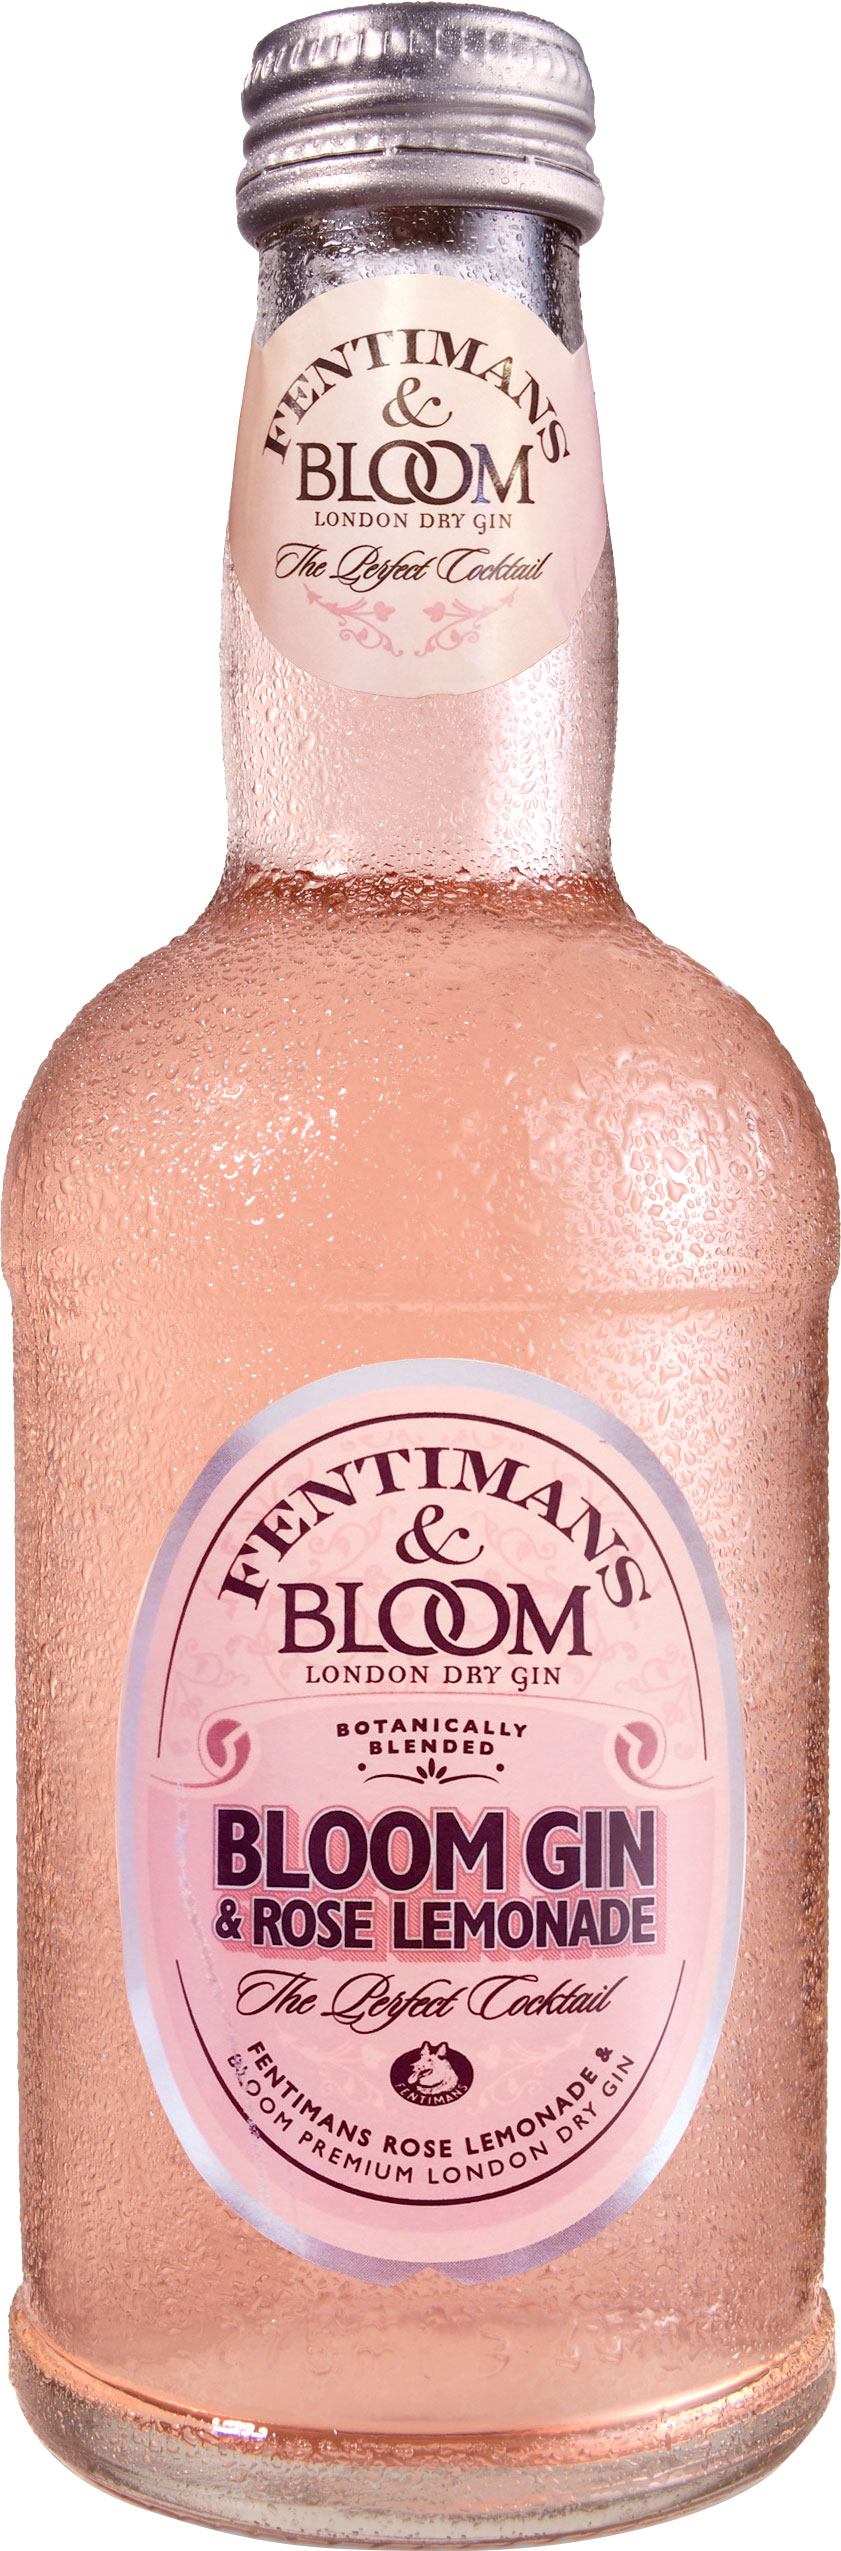 Fentimans & Bloom - Gin And Rose Lemonade 12x 275ml Bottles